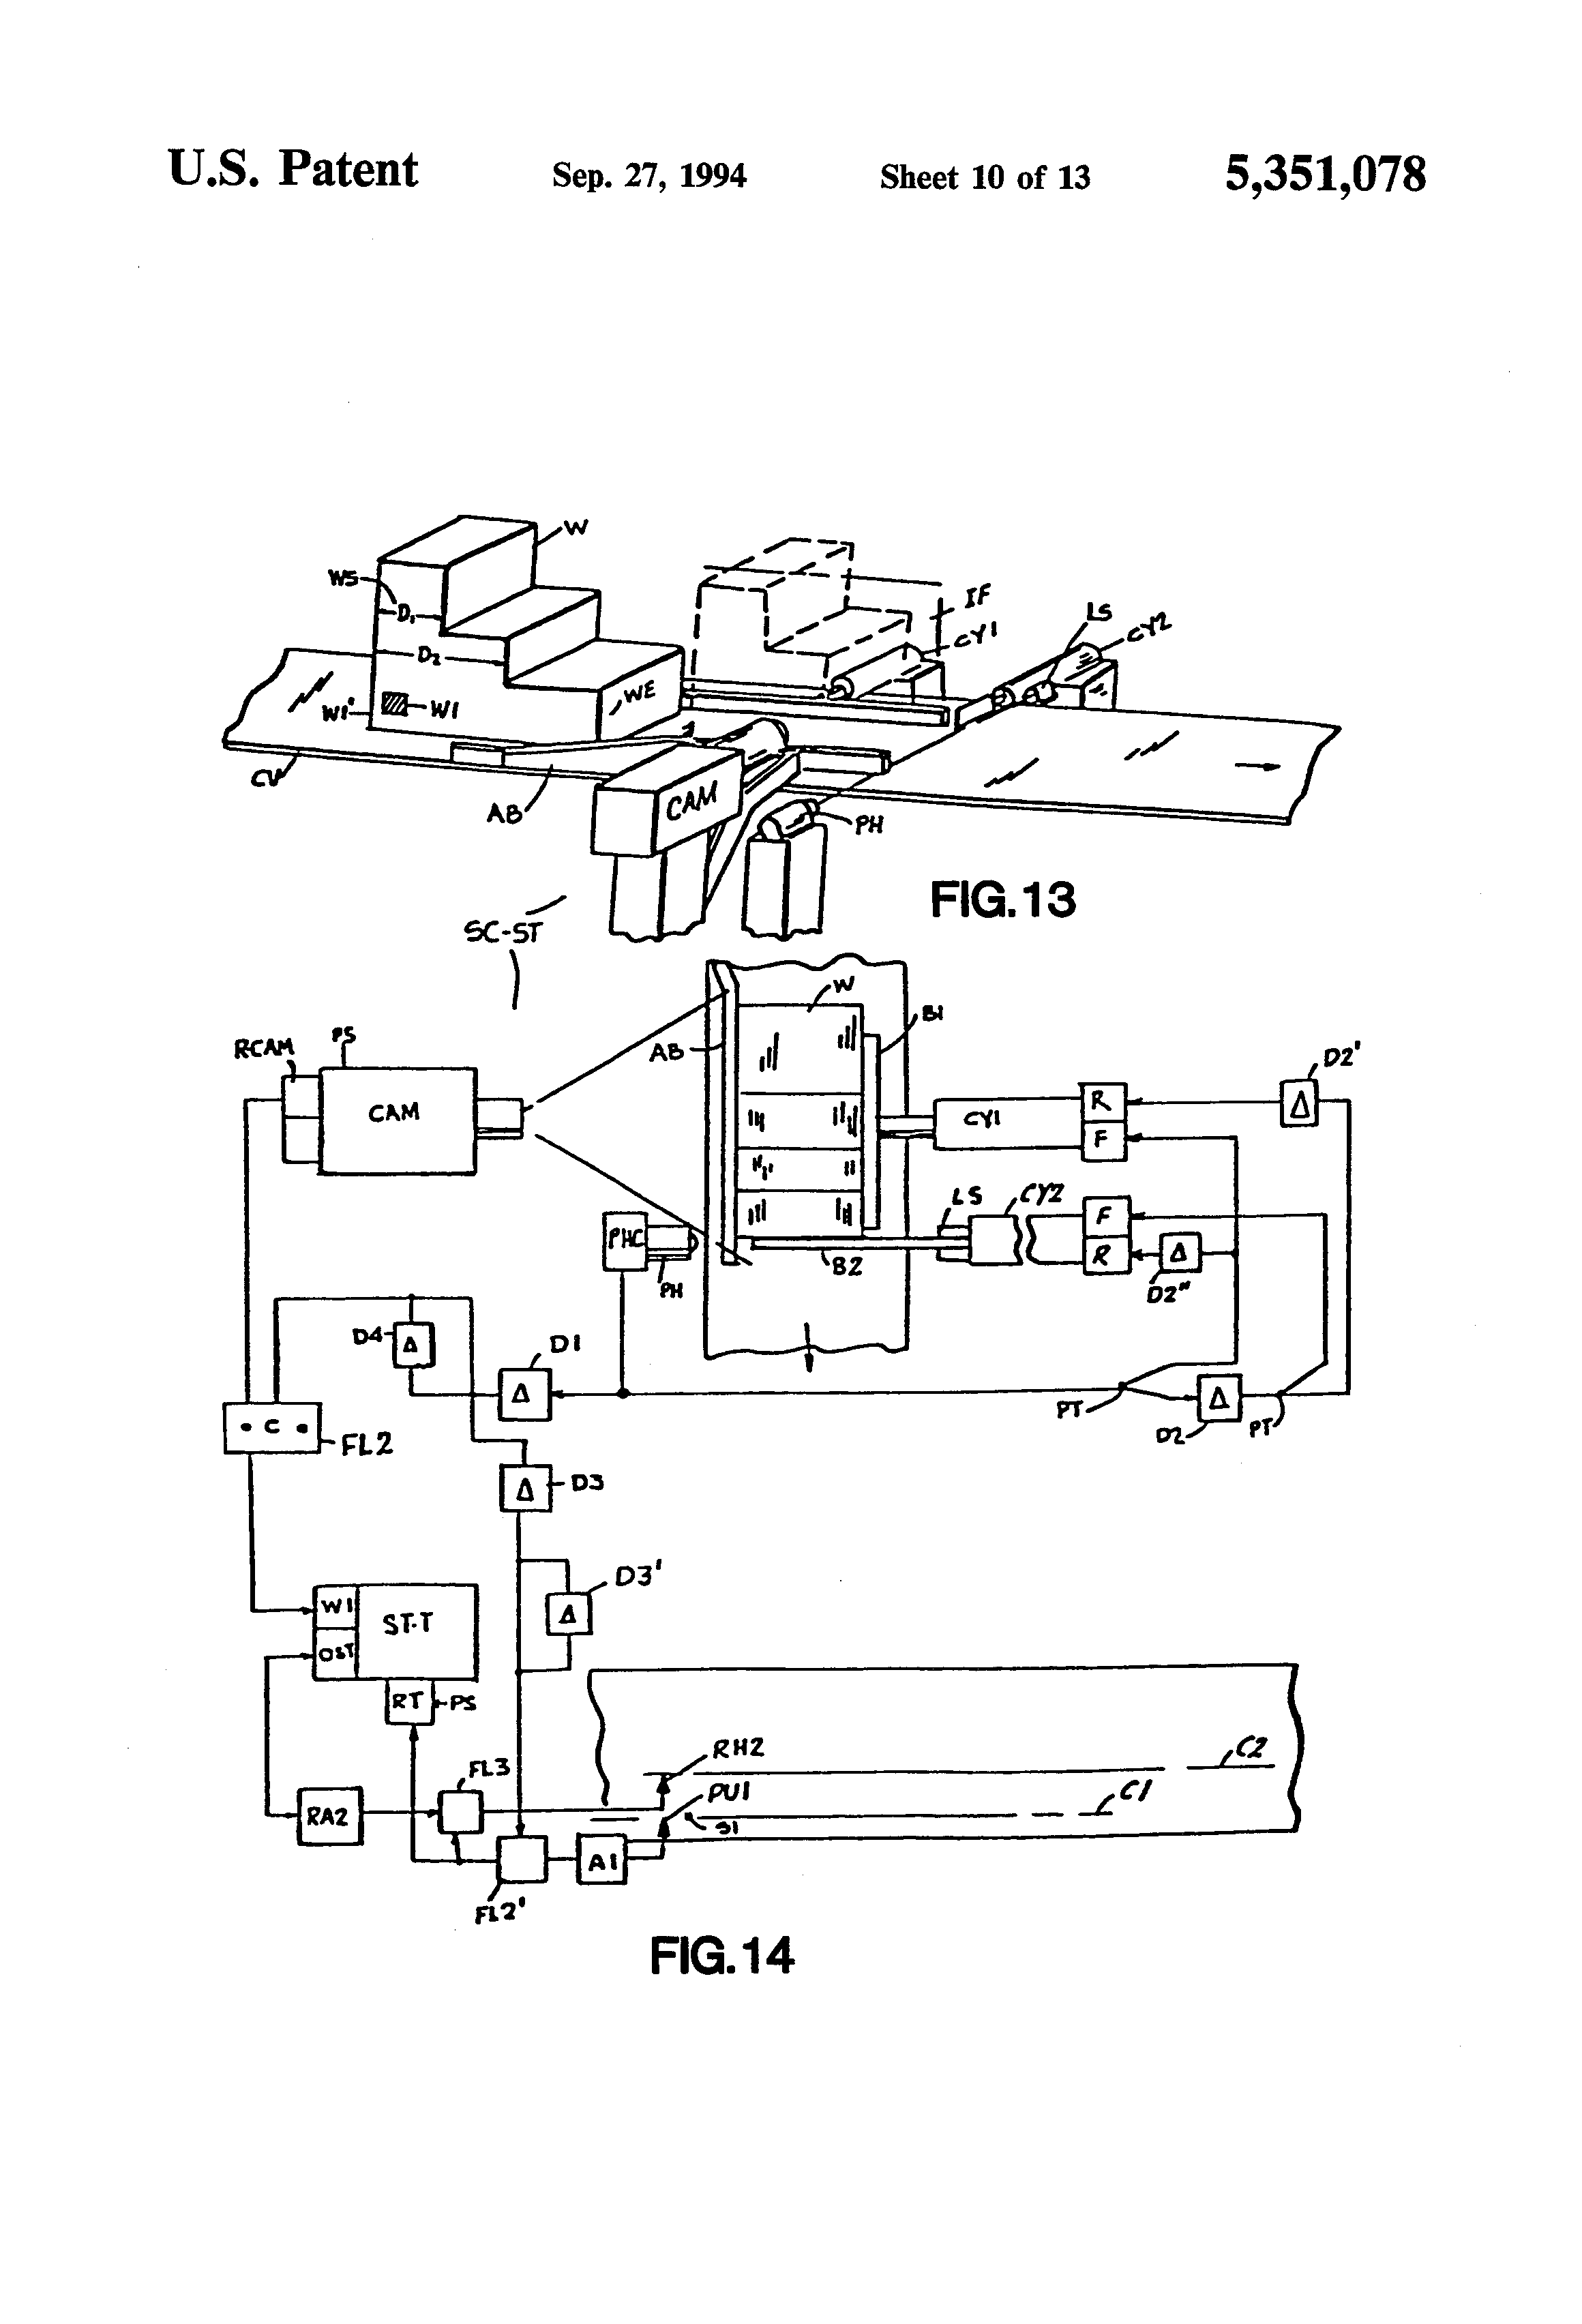 Patent Us5351078 Apparatus And Methods For Automated Observation Computer Programcontrolled Circuit Board Recycling Equipment Drawing